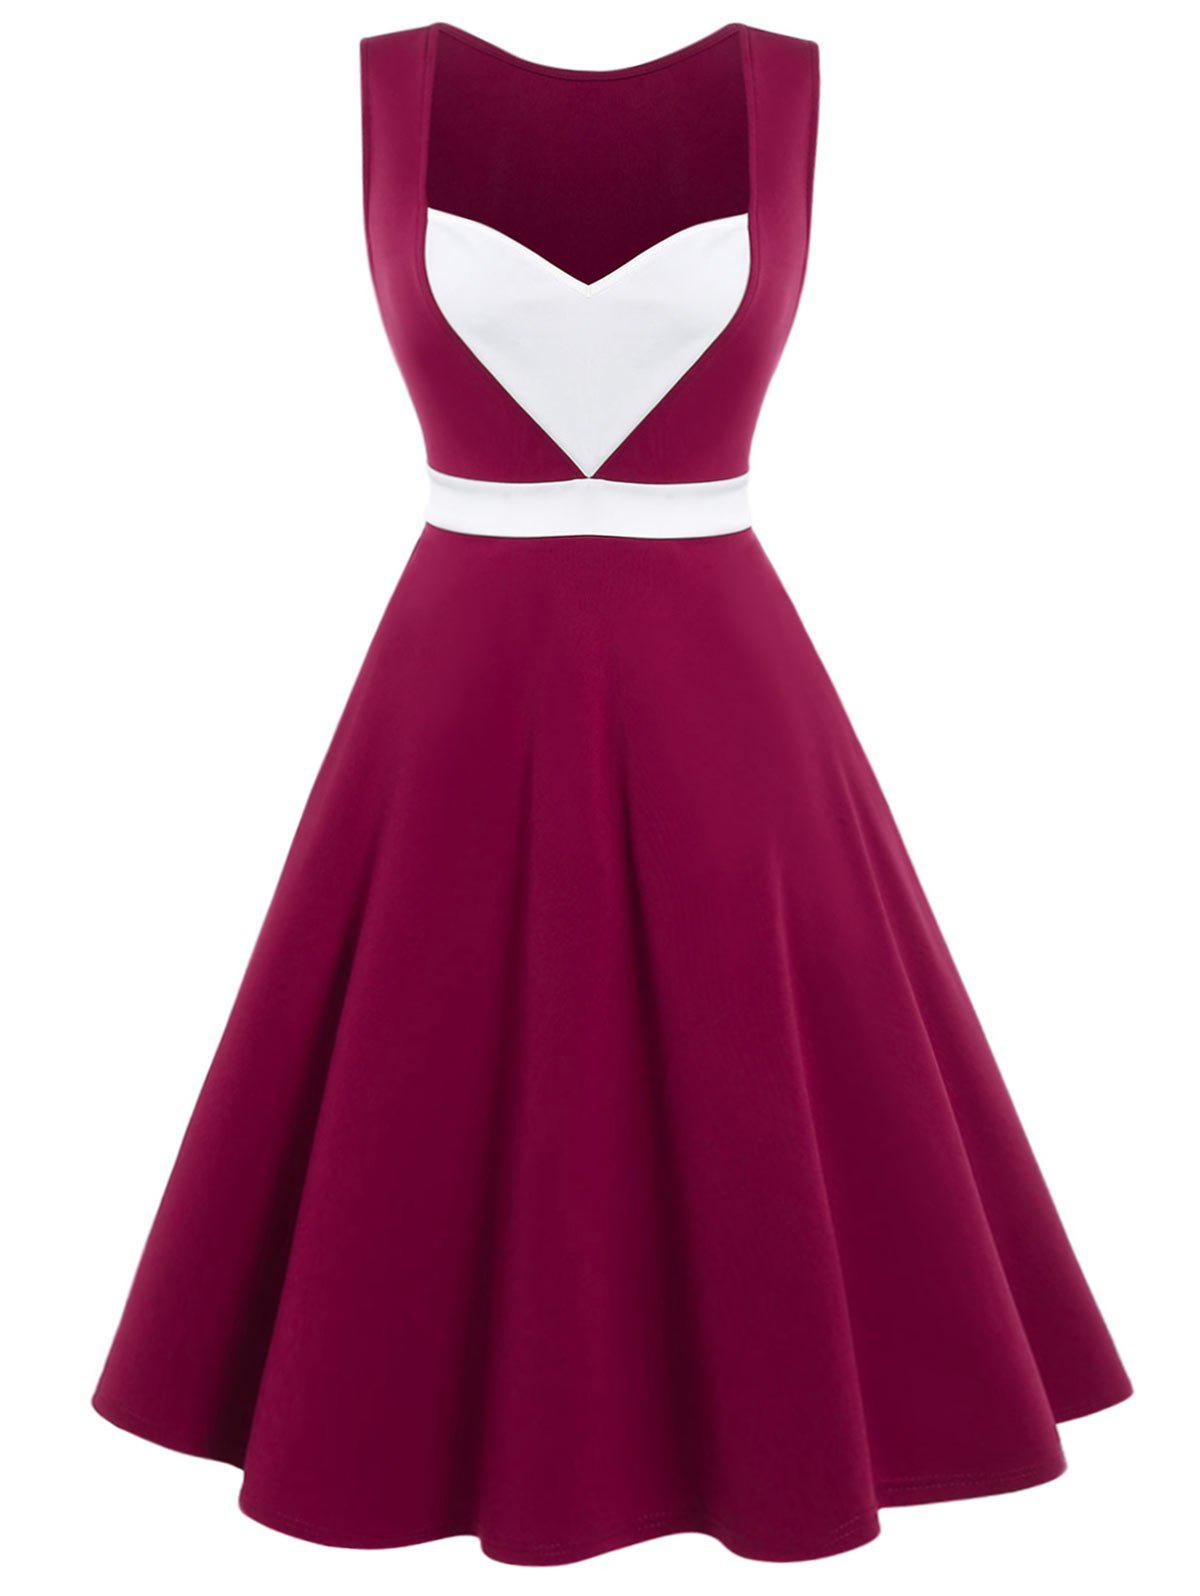 Sale Sweetheart Neck High Rise Flare Dress